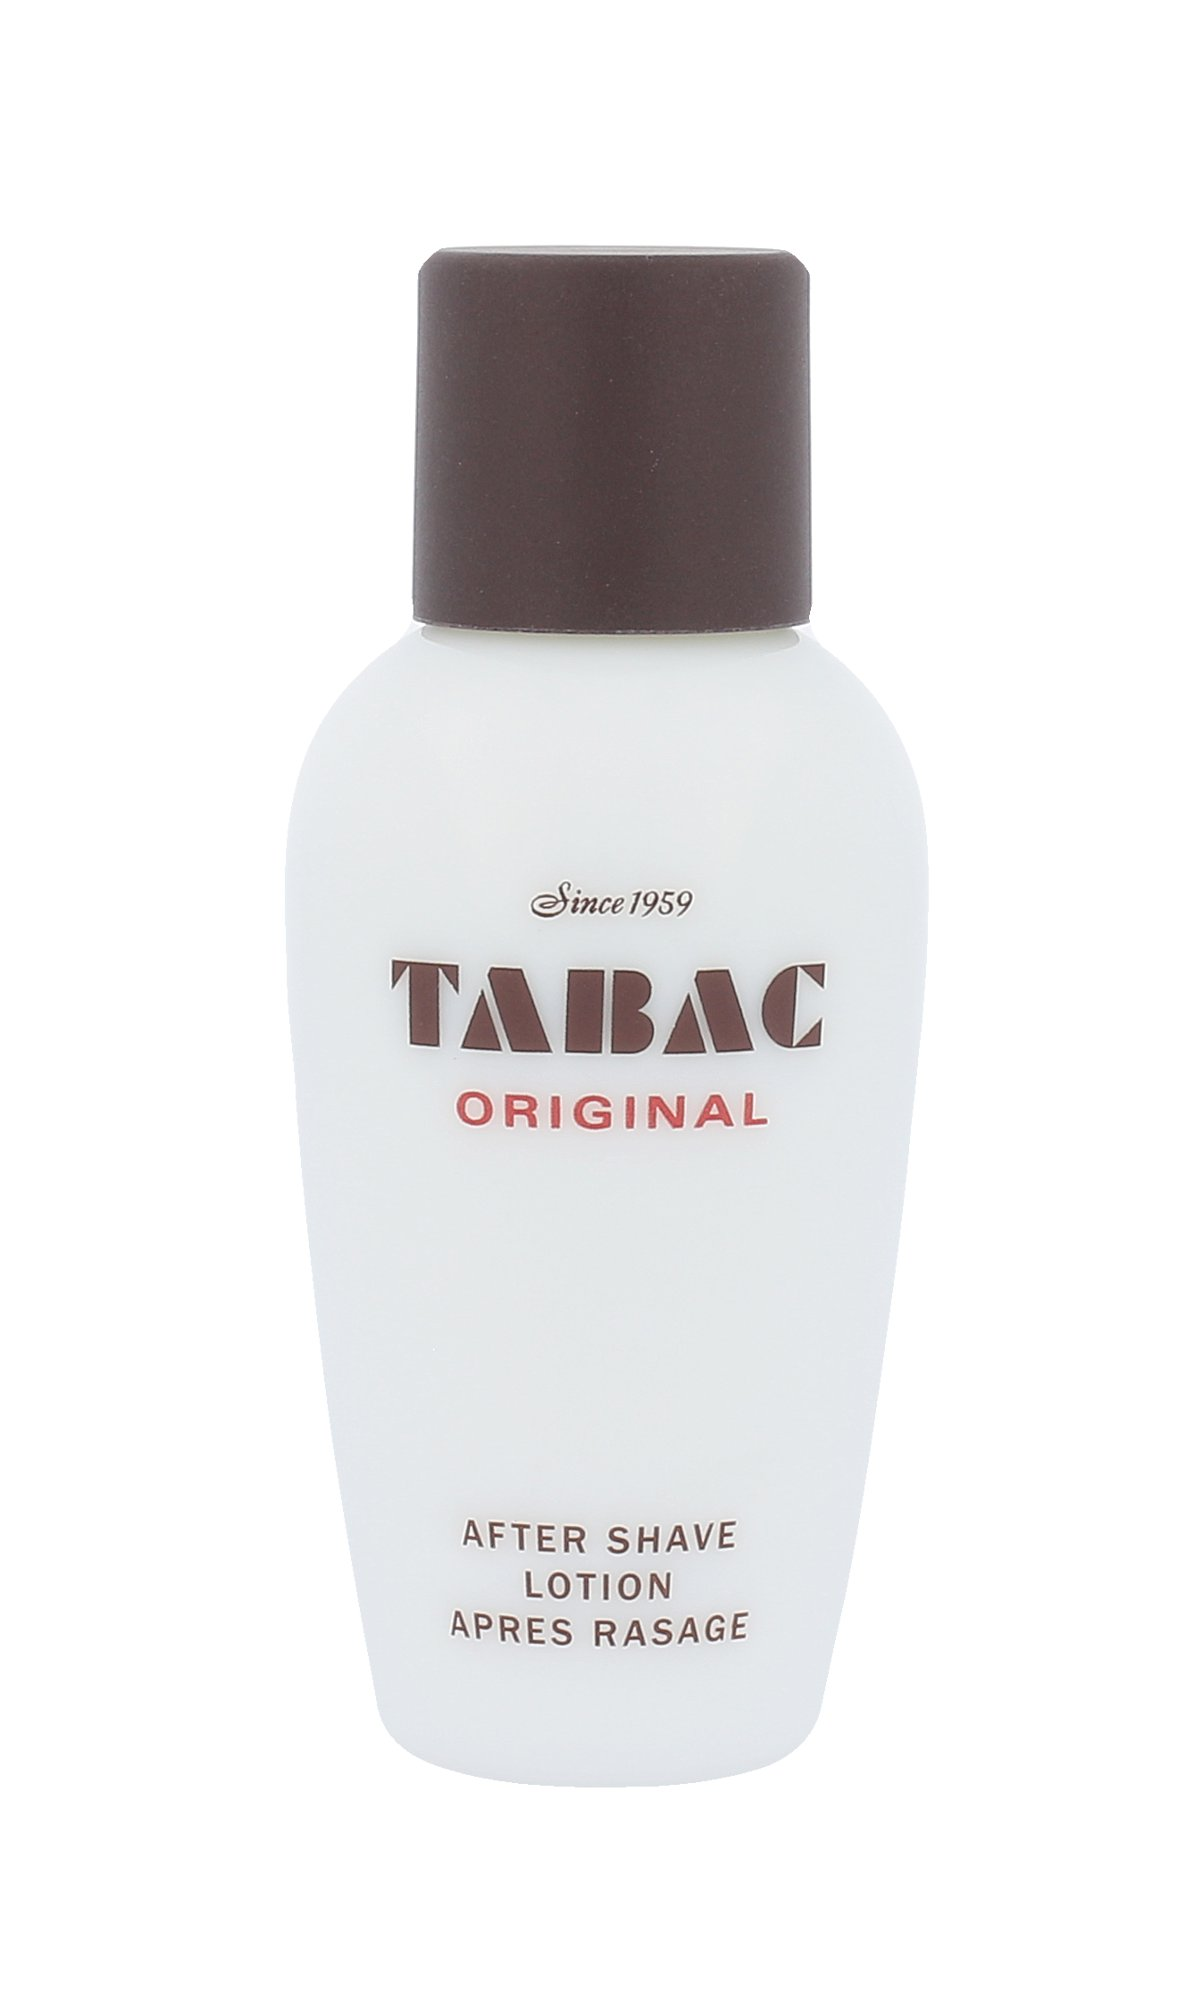 TABAC Original, after shave 100ml